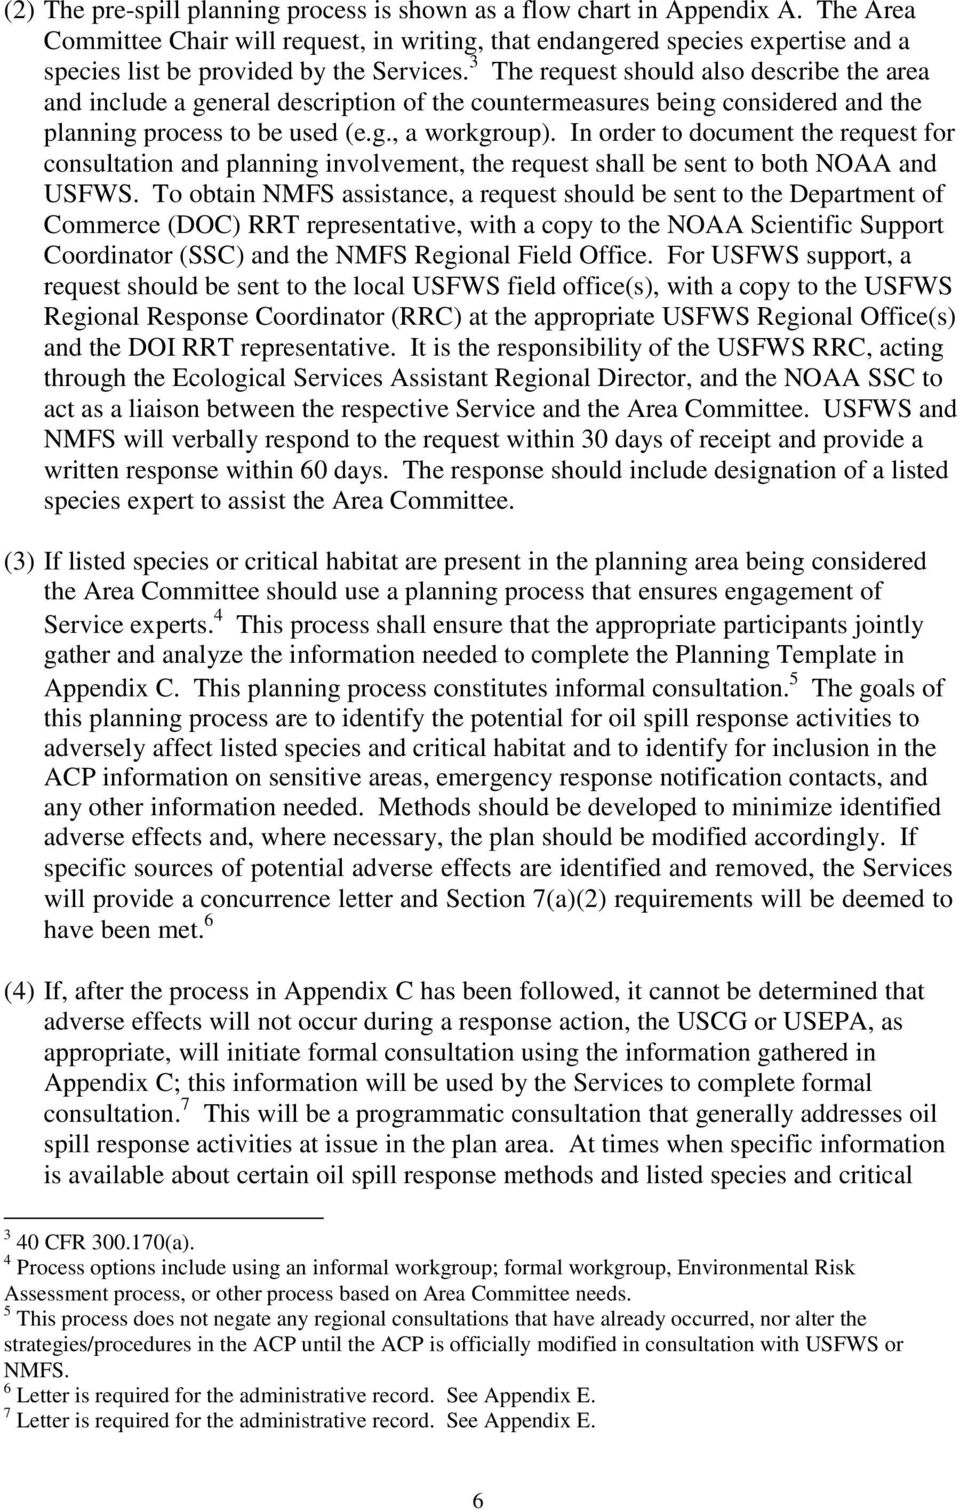 3 The request should also describe the area and include a general description of the countermeasures being considered and the planning process to be used (e.g., a workgroup).